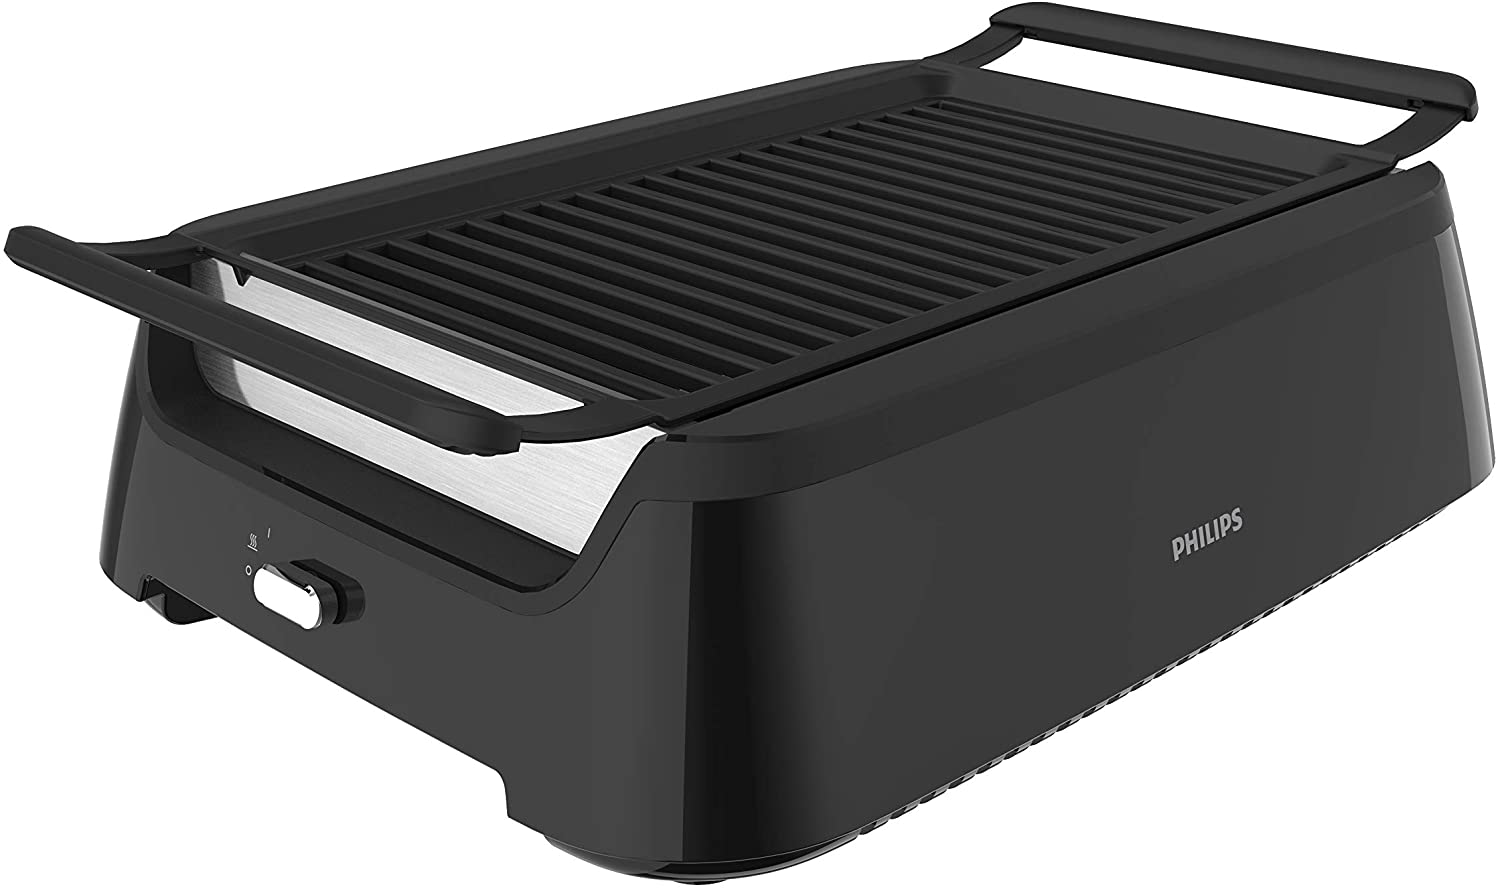 Philips Smoke-less HD6371:94 Electric Grill